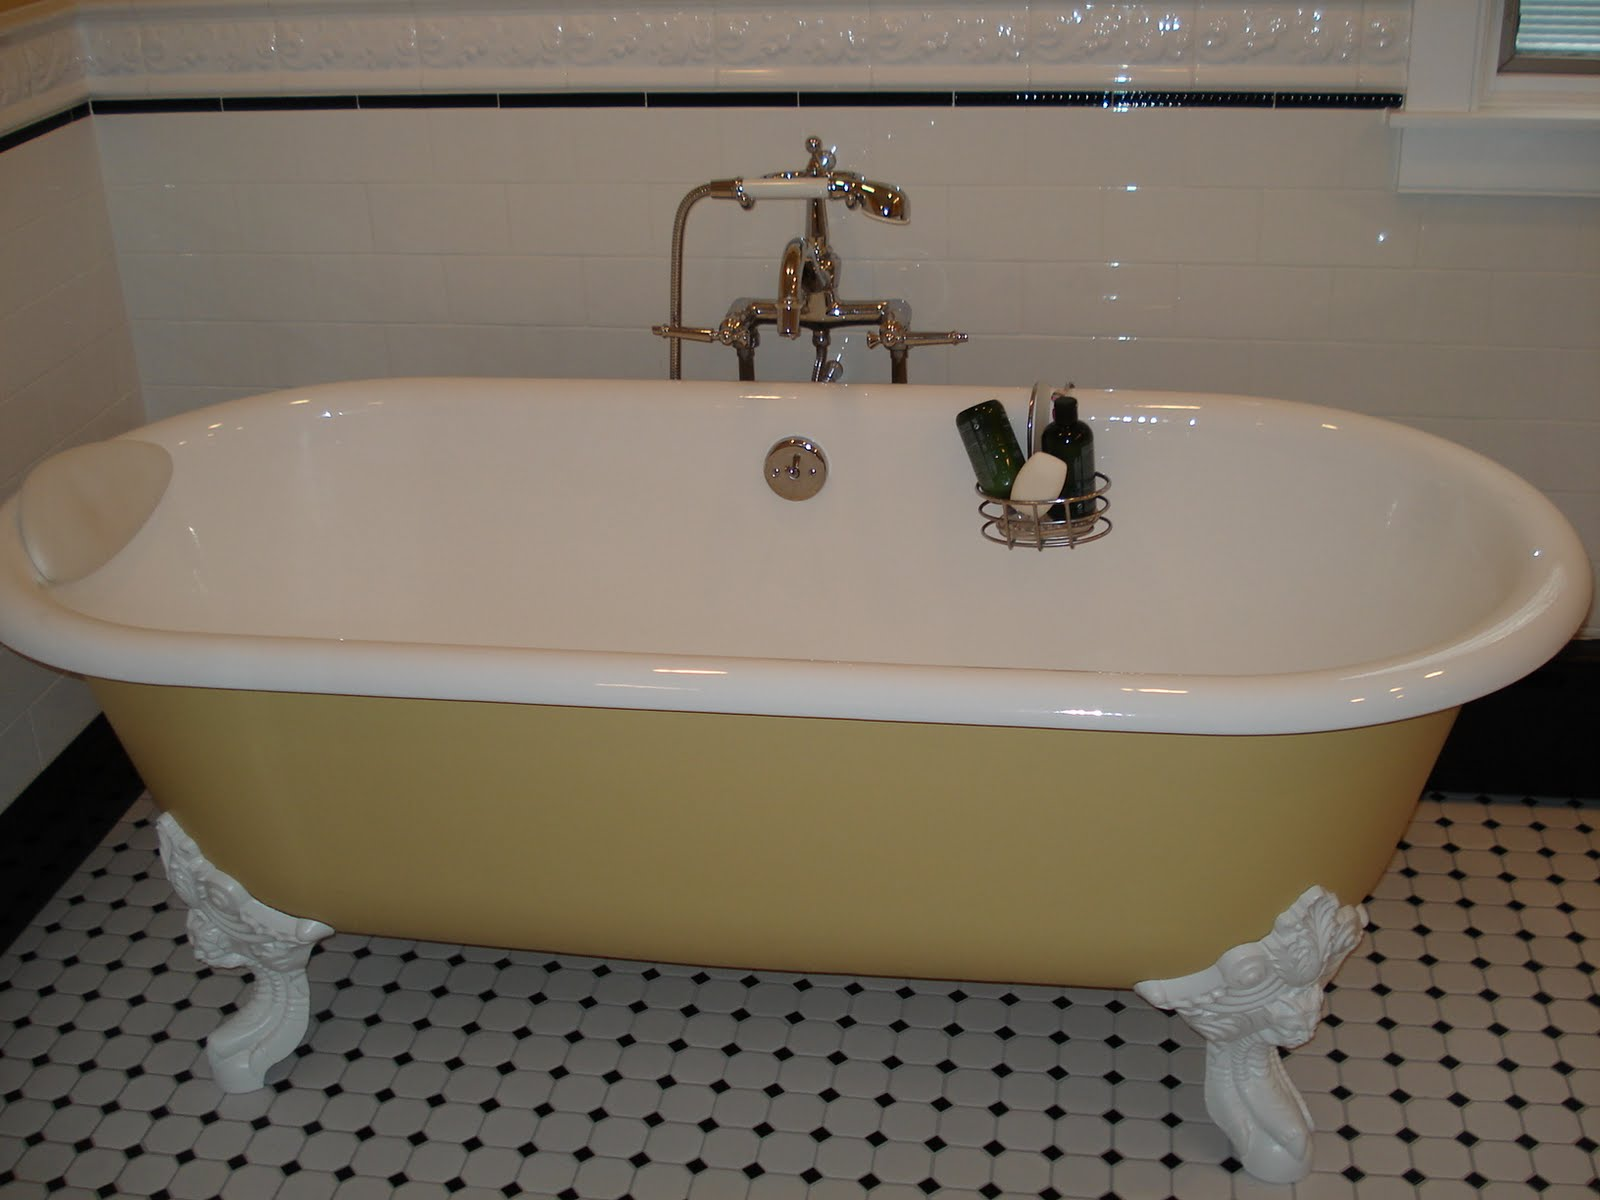 on select bathtub l cast your enhance of vintage bathroom telephone further the tub feet space antique freestanding imperial retro appeal to clawfoot faucet iron dual ralston